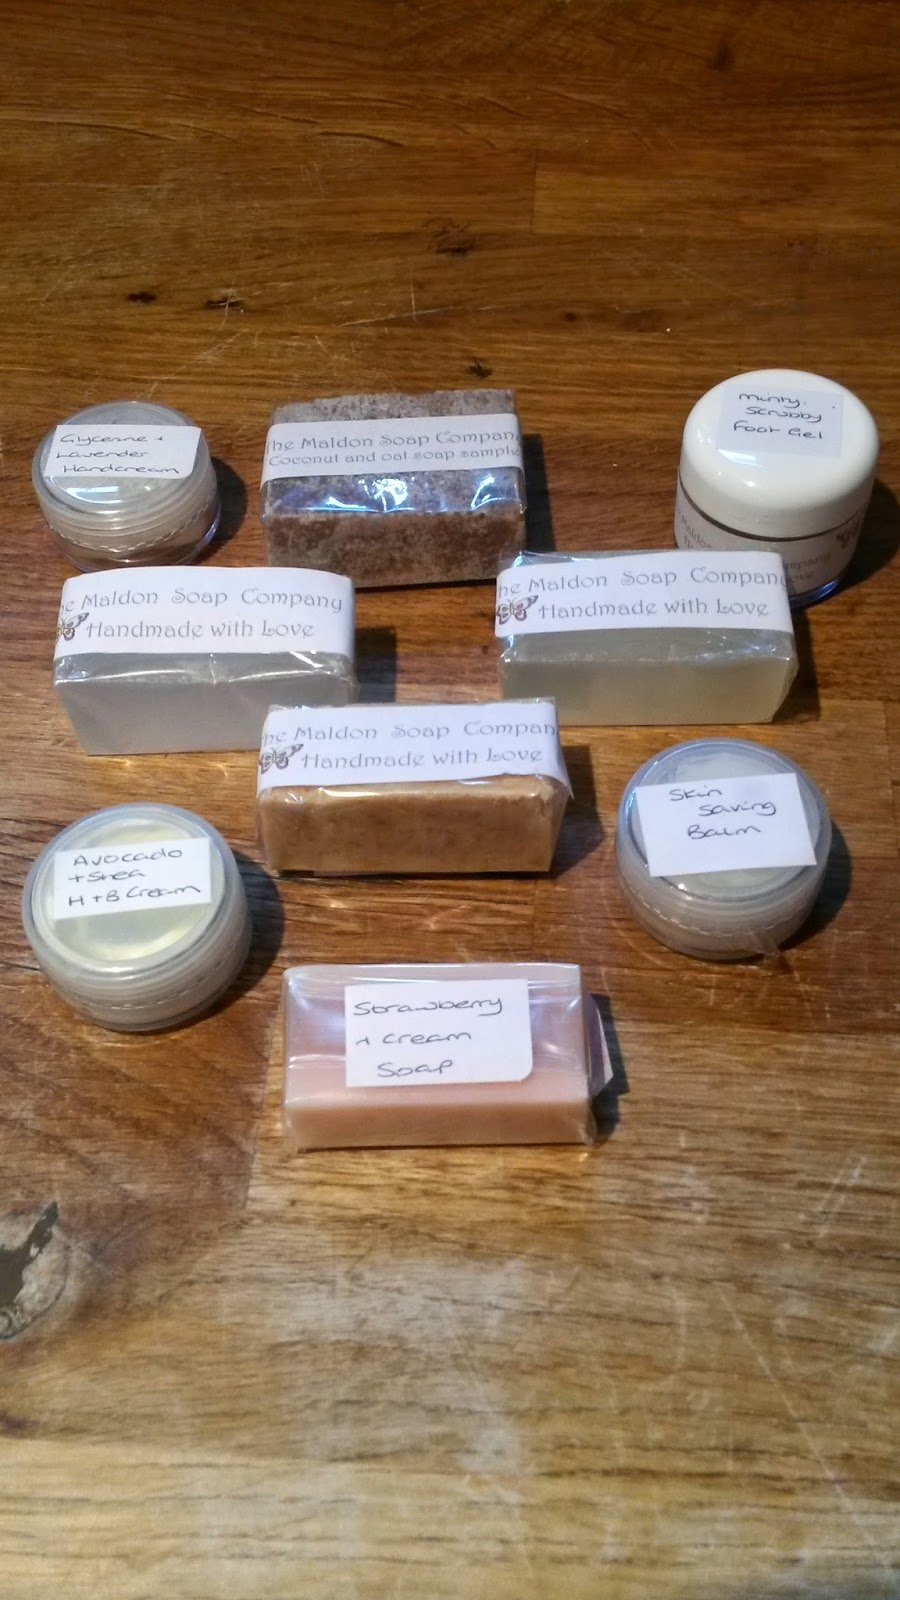 Maldon Soap Samples